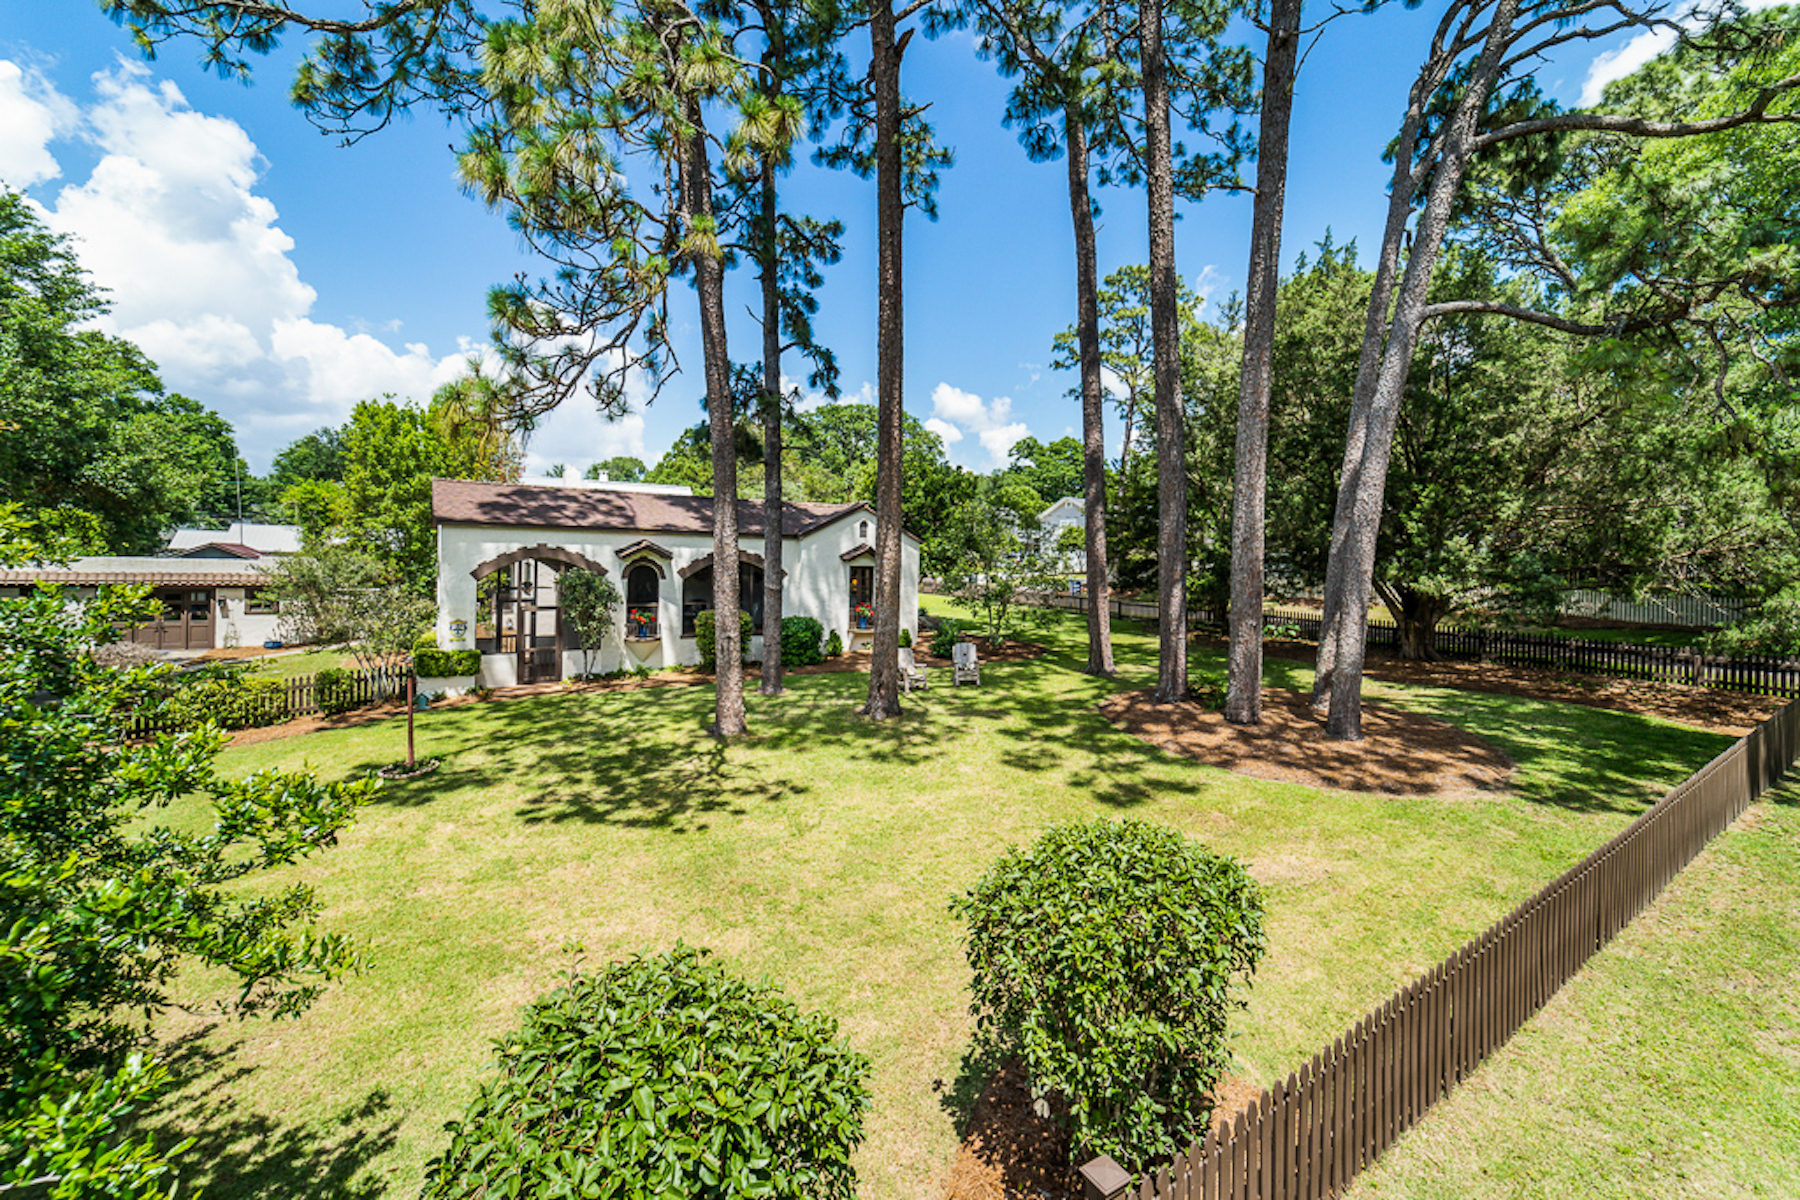 Single Family Homes for Active at Historic Spanish Revival Home 109 Gaston Avenue Fairhope, Alabama 36532 United States